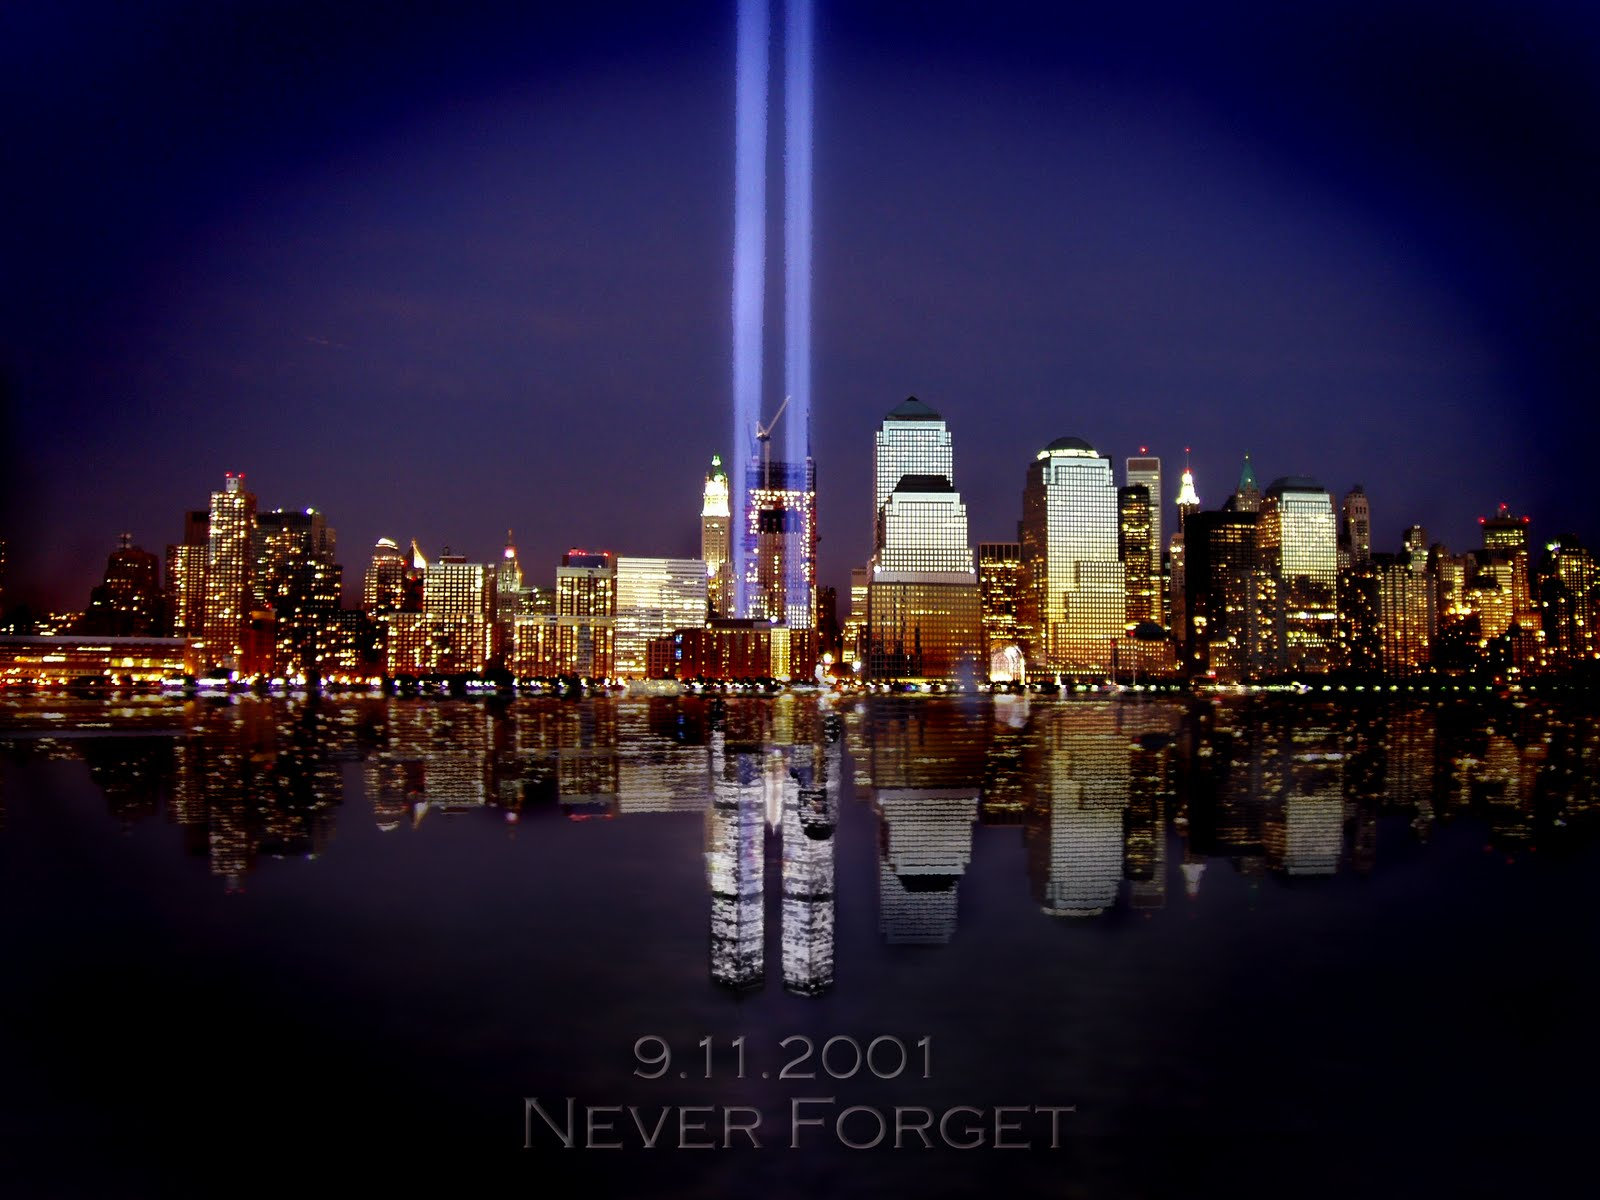 11 Never Forget Wallpaper Never forget click to see 1600x1200